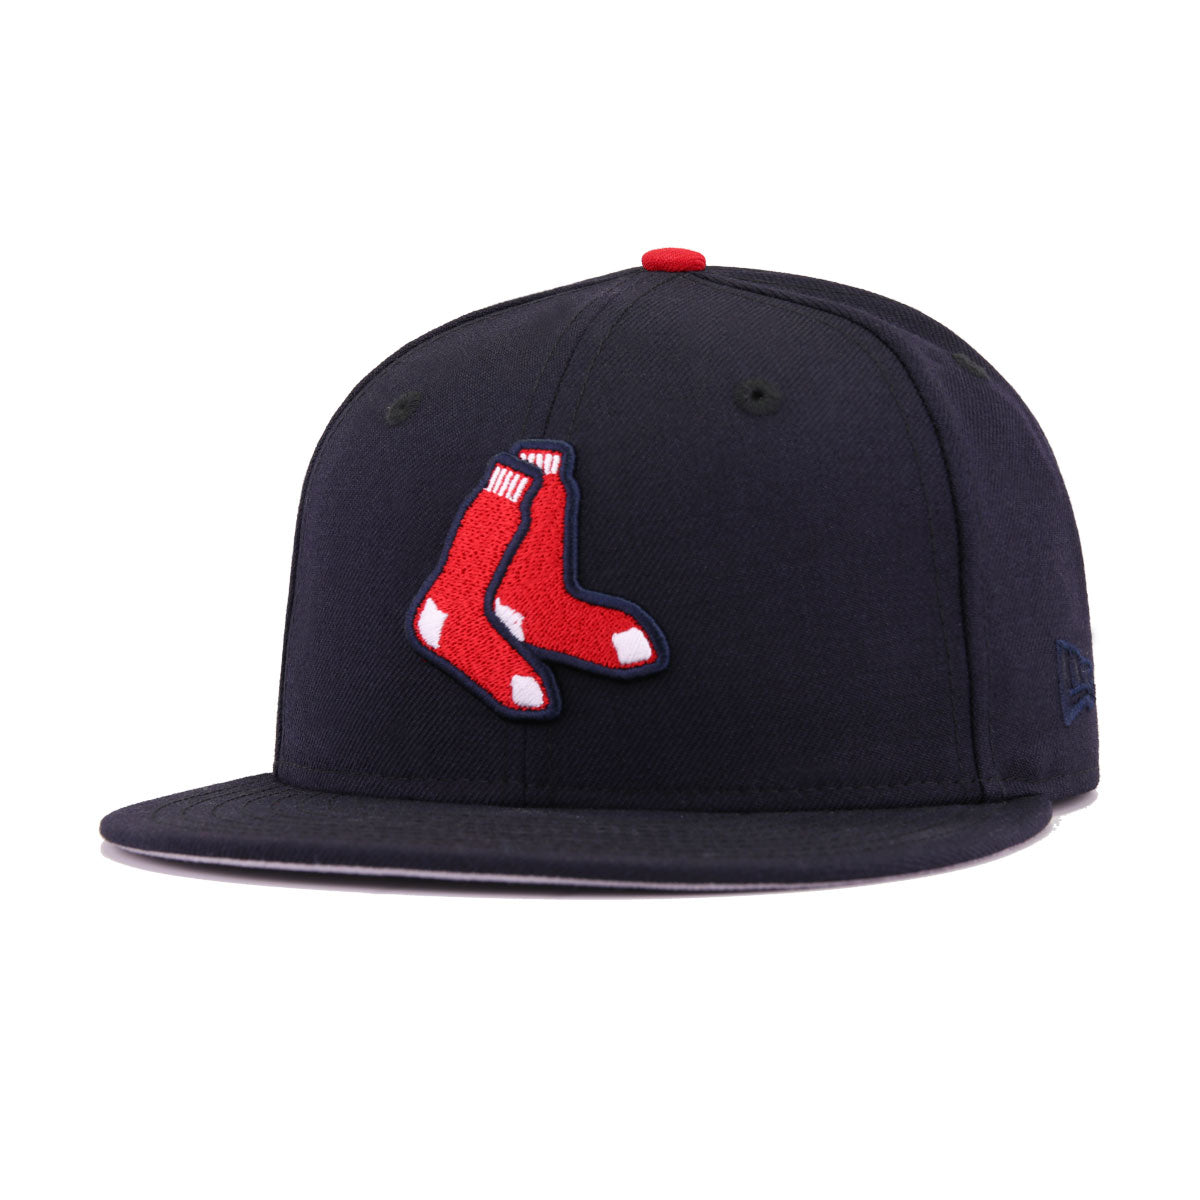 Boston Red Sox Navy Socks New Era 59Fifty Fitted e227c2b3085c